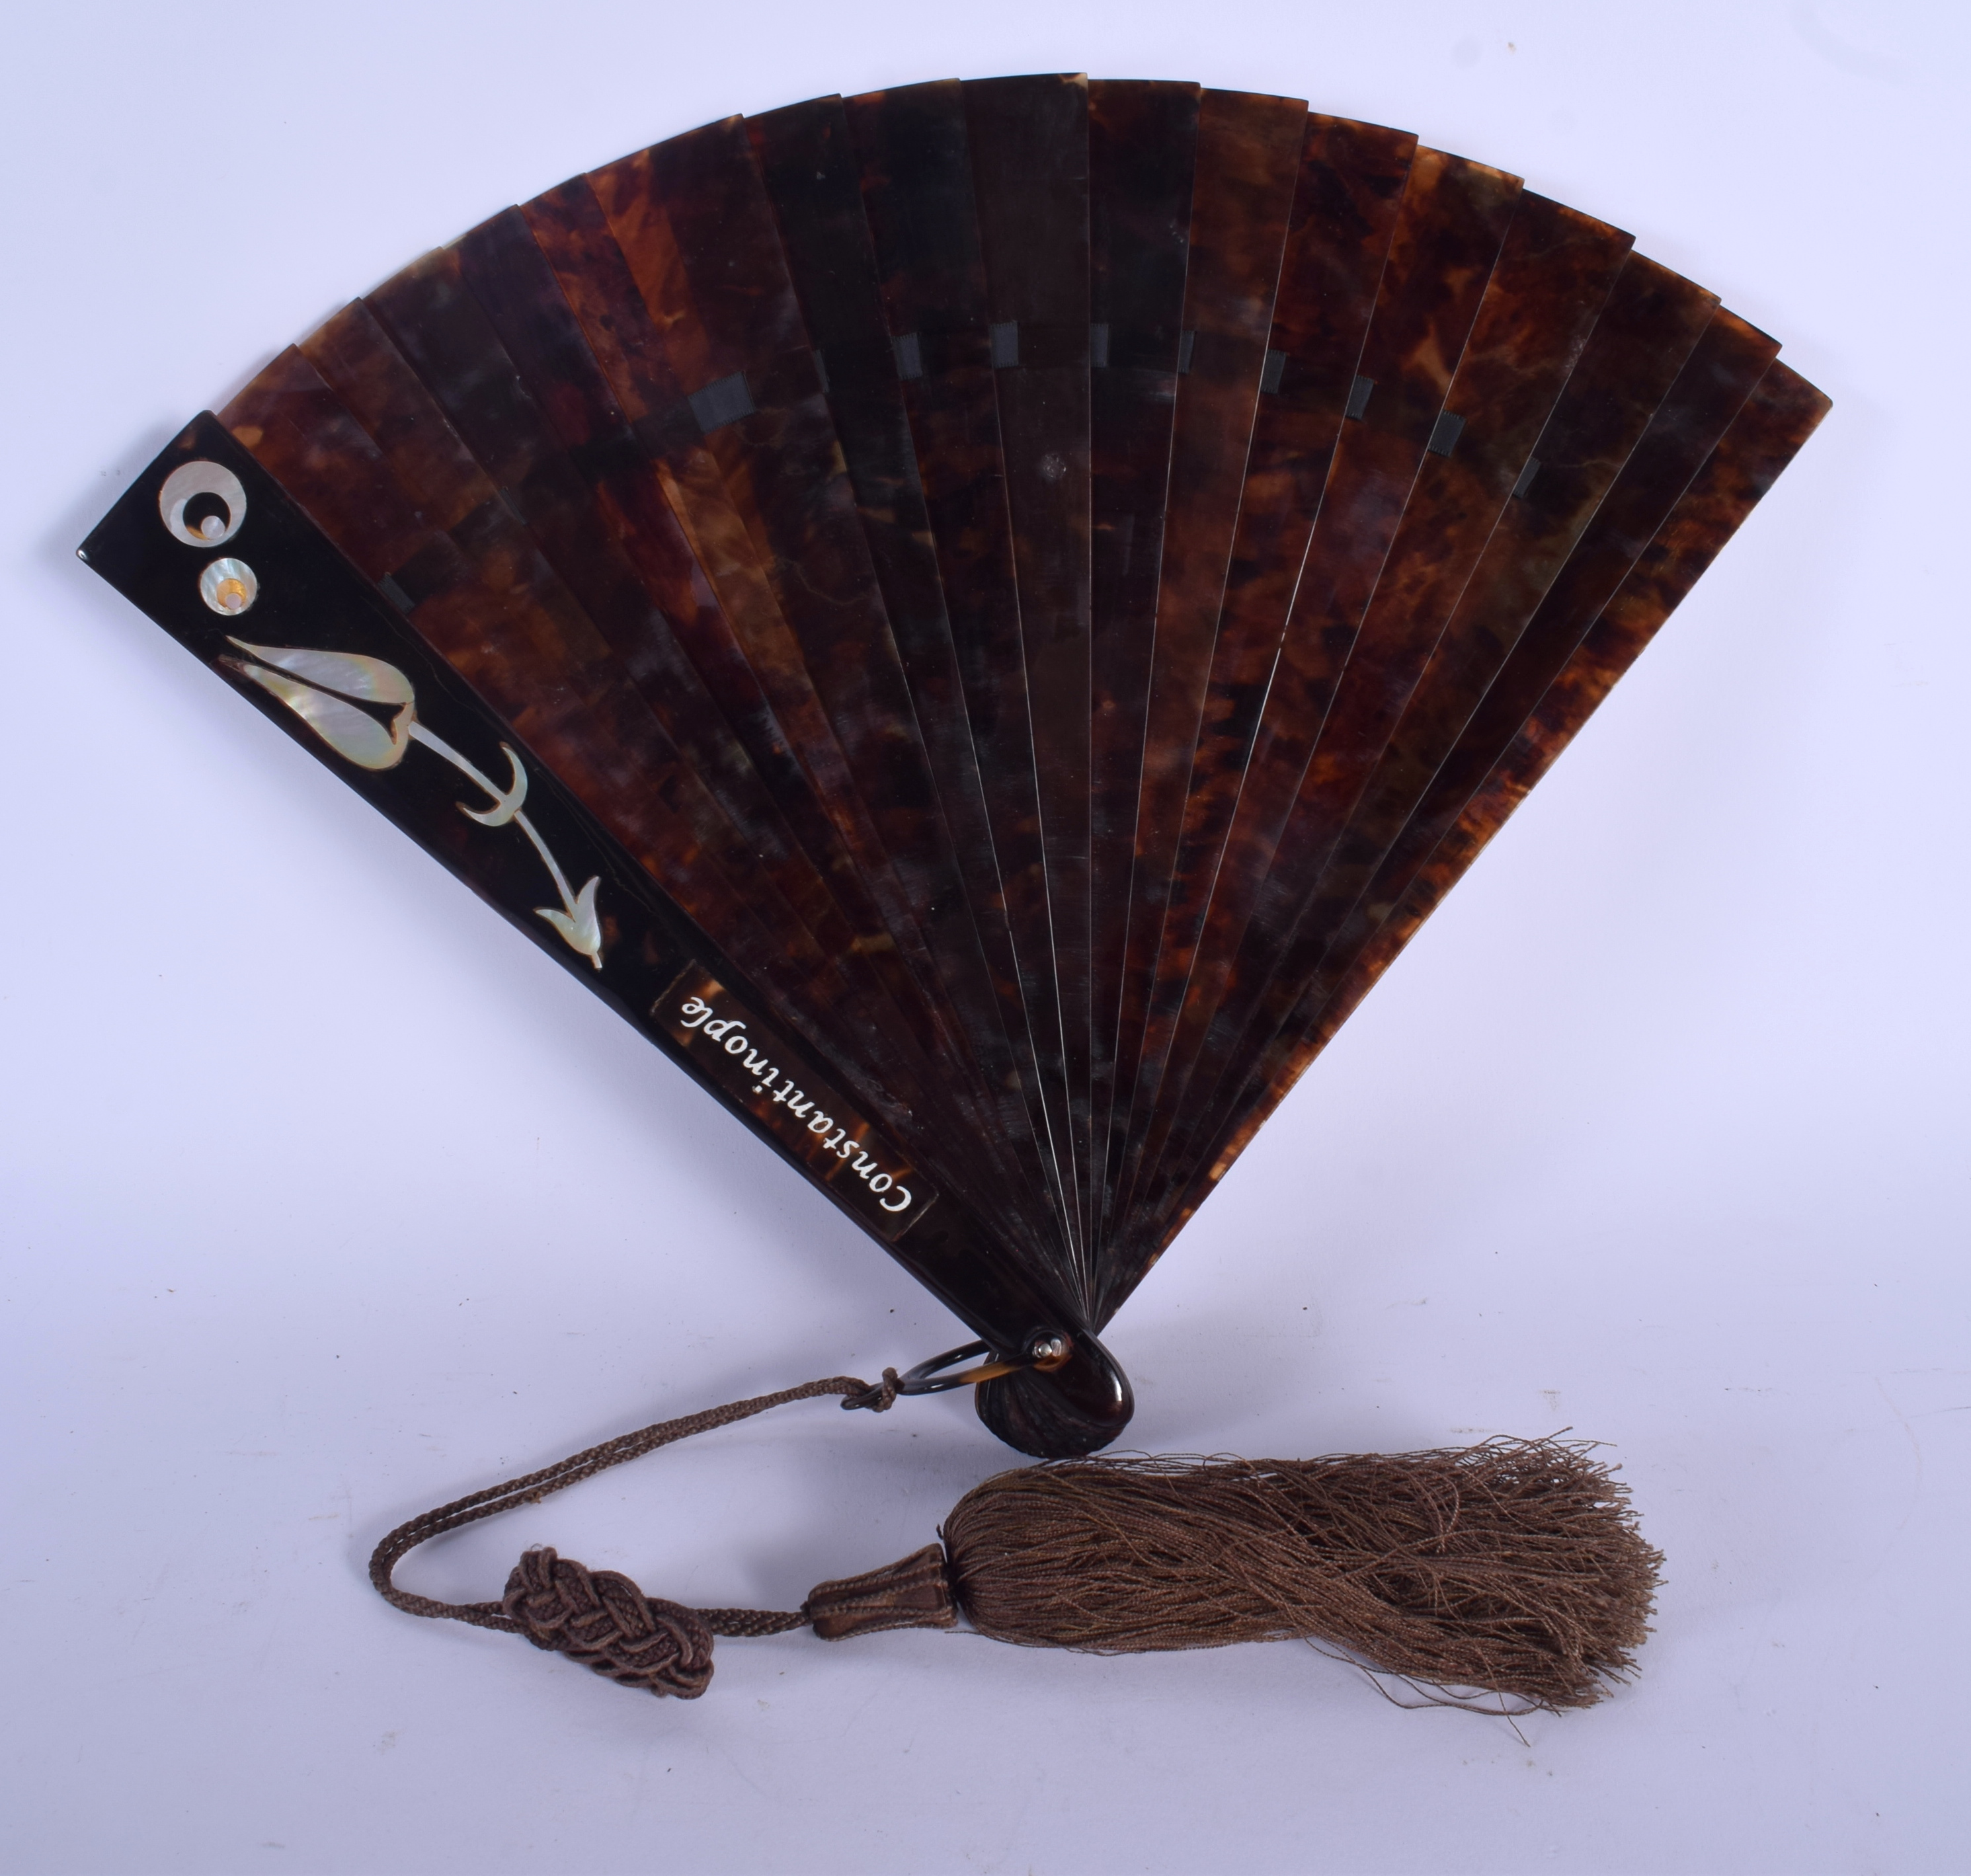 A RARE EARLY 20TH CENTURY TURKISH OTTOMAN TYPE TORTOISESHELL FAN decorated with shell foliage. 25 cm